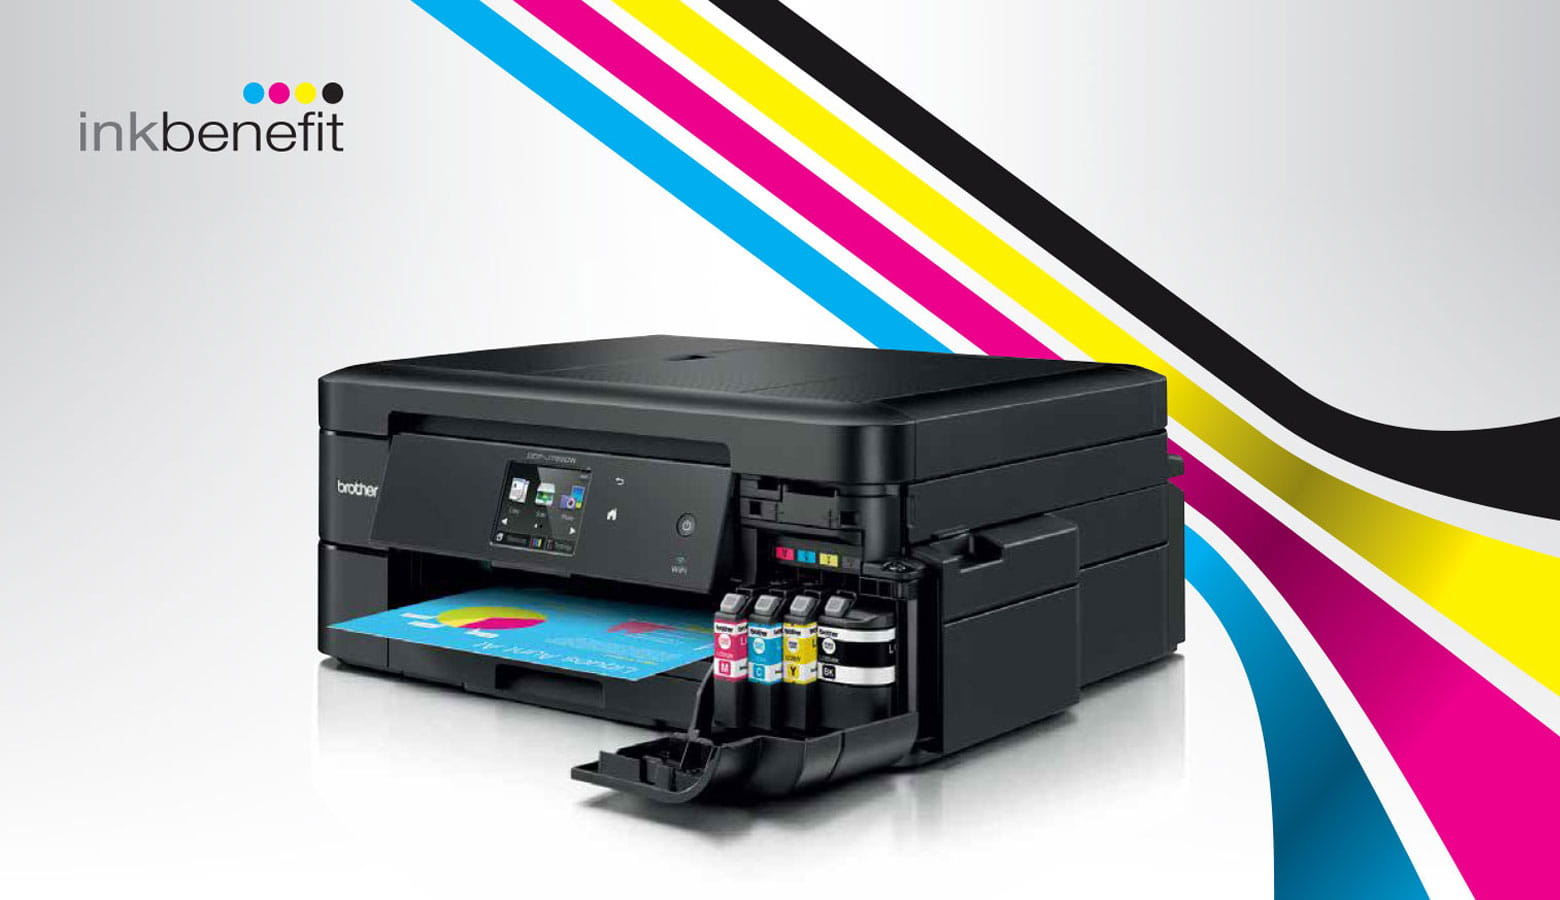 Brother printer with ink benefit background